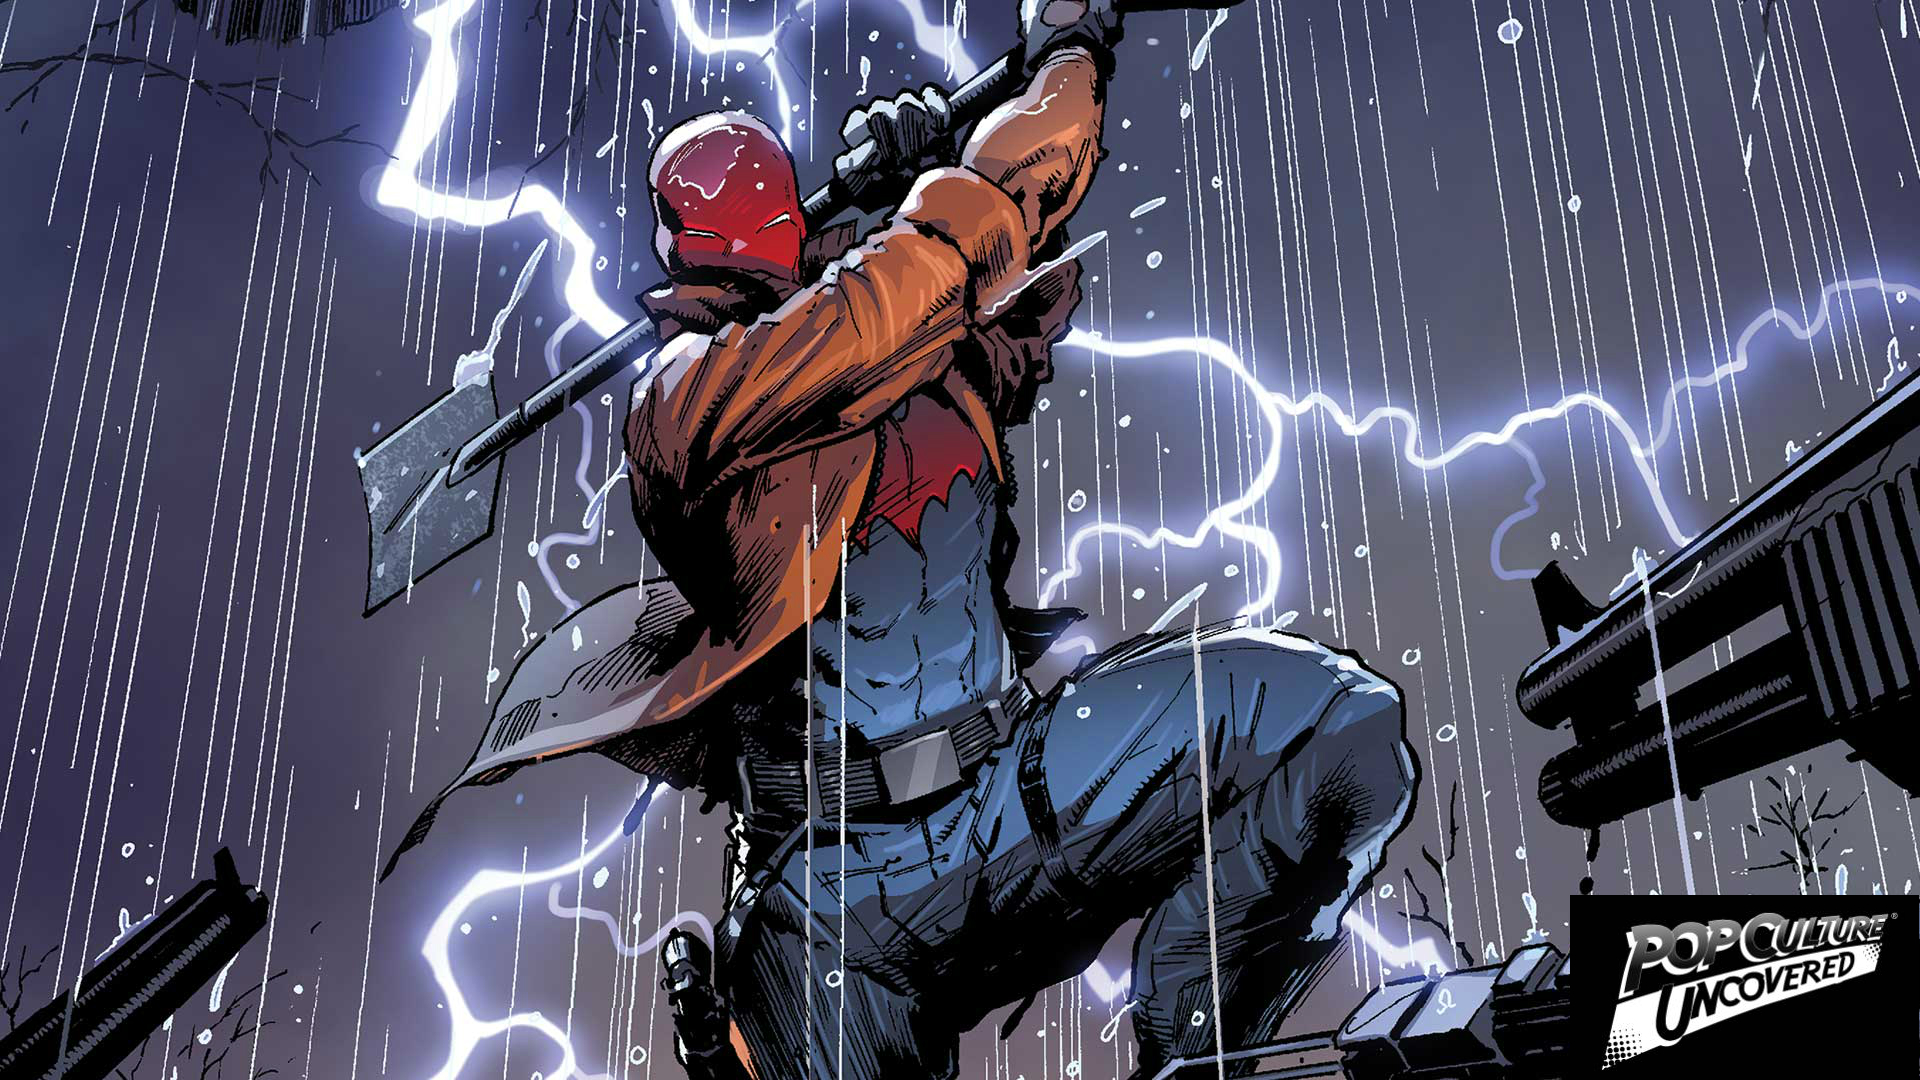 review brew red hood and the outlaws 23 pop culture uncovered